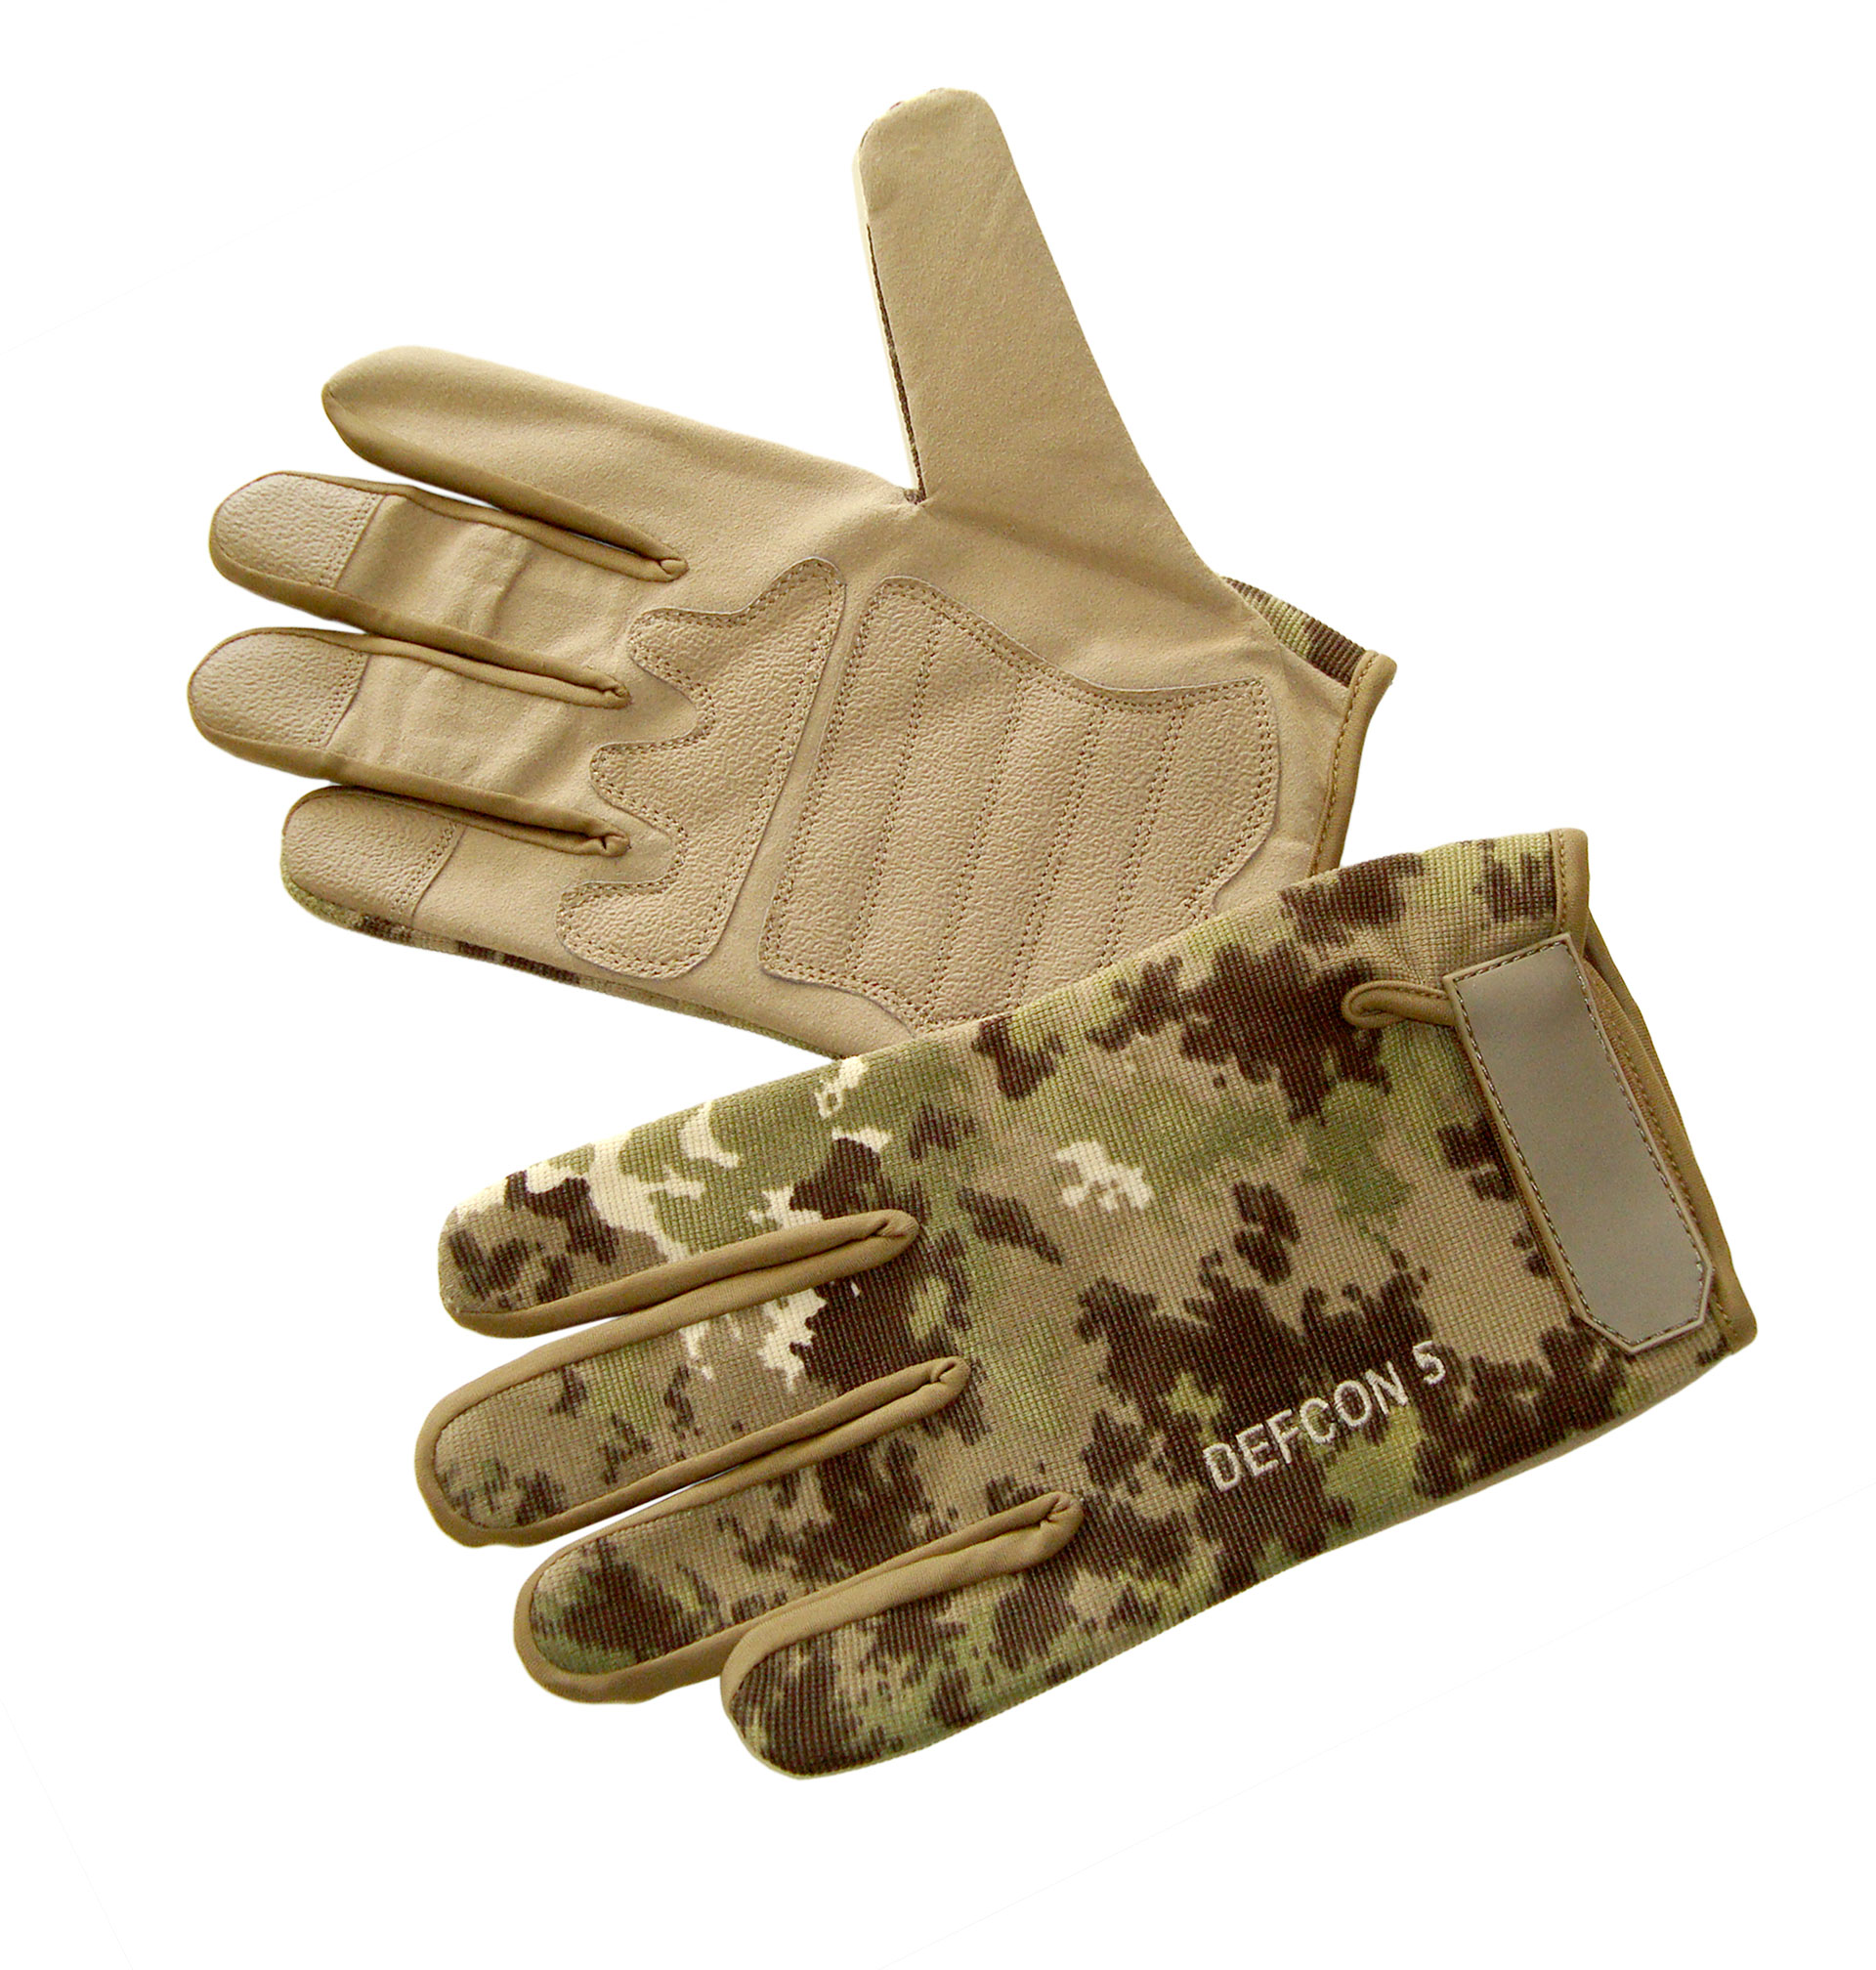 DEFCON 5 SHOOTING GLOVES